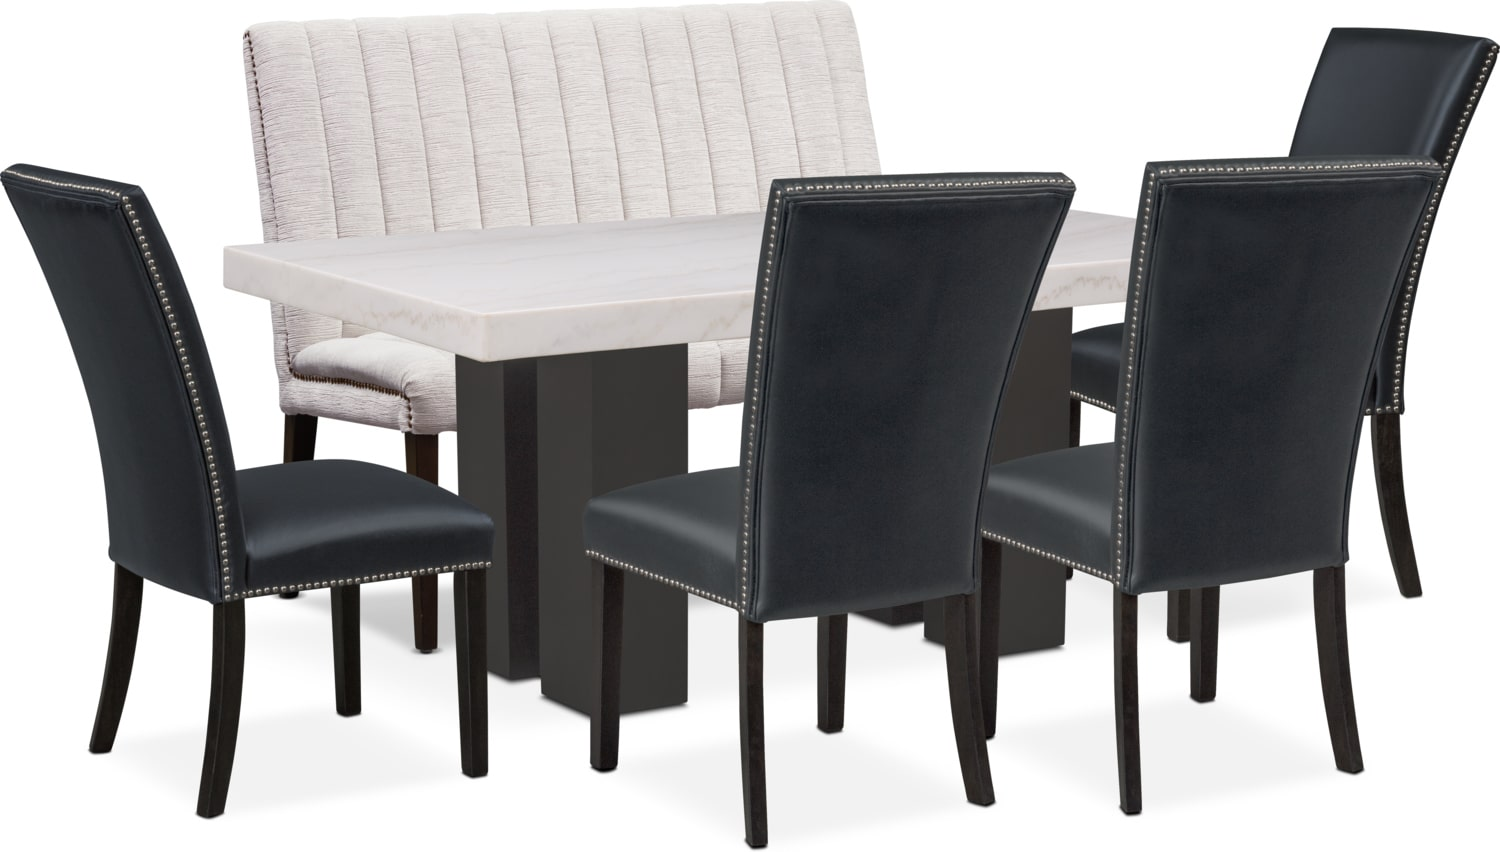 Dining Room Furniture - Artemis Marble Dining Table, 4 Upholstered Dining Chairs, and Bench